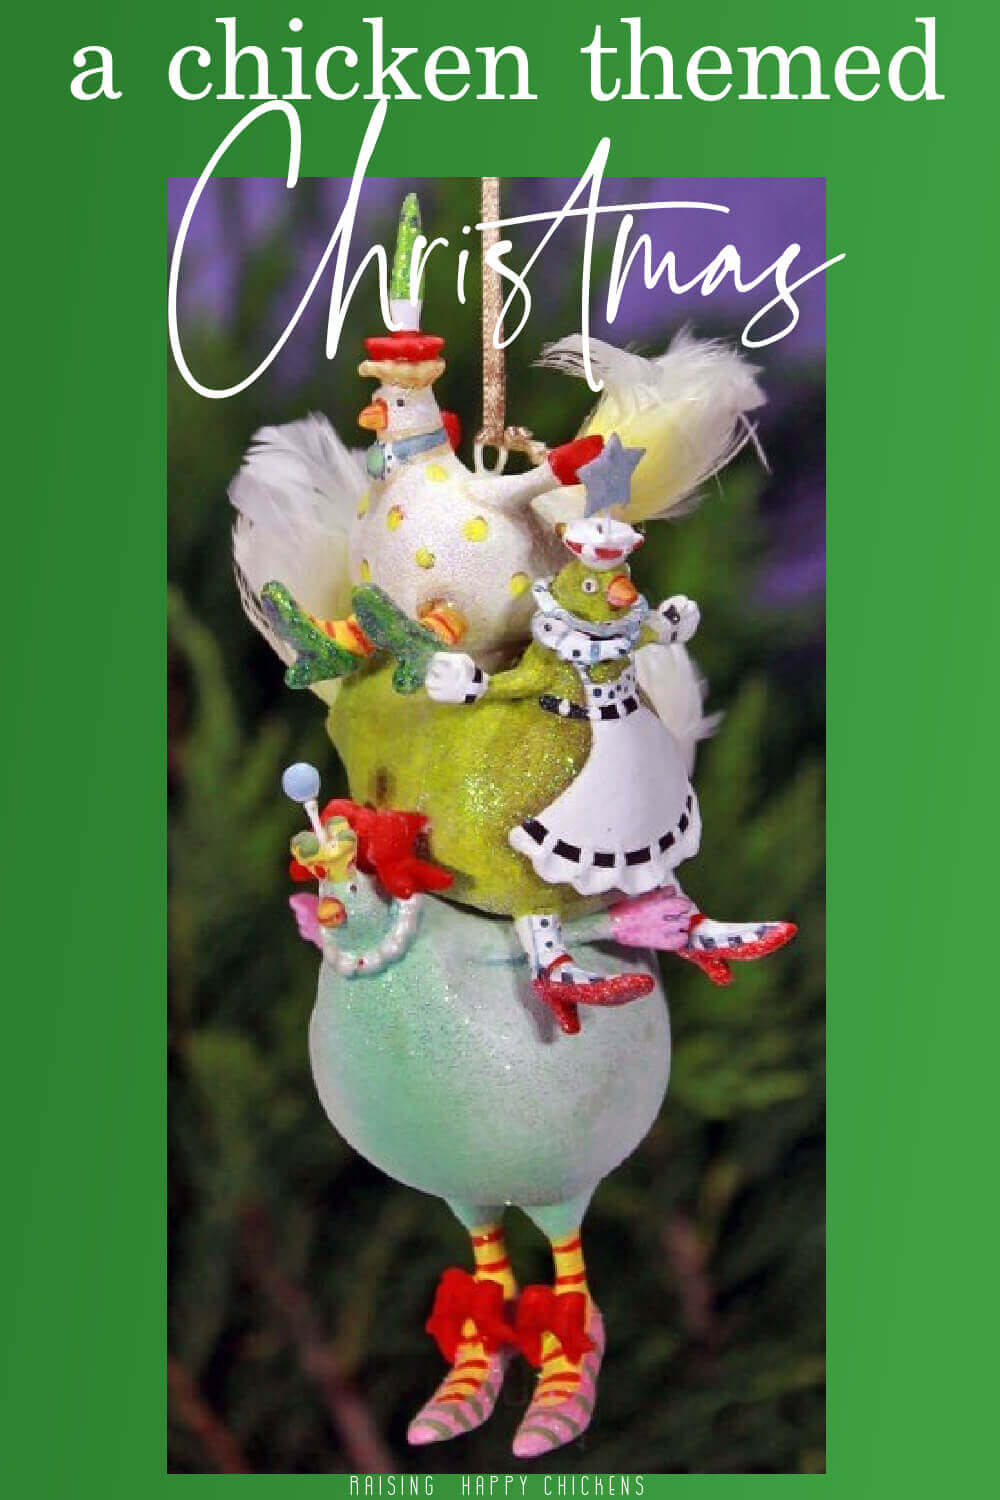 Looking for a chicken themed Christmas tree ornament for yourself or to give as a gift? Here's a selection of the best.